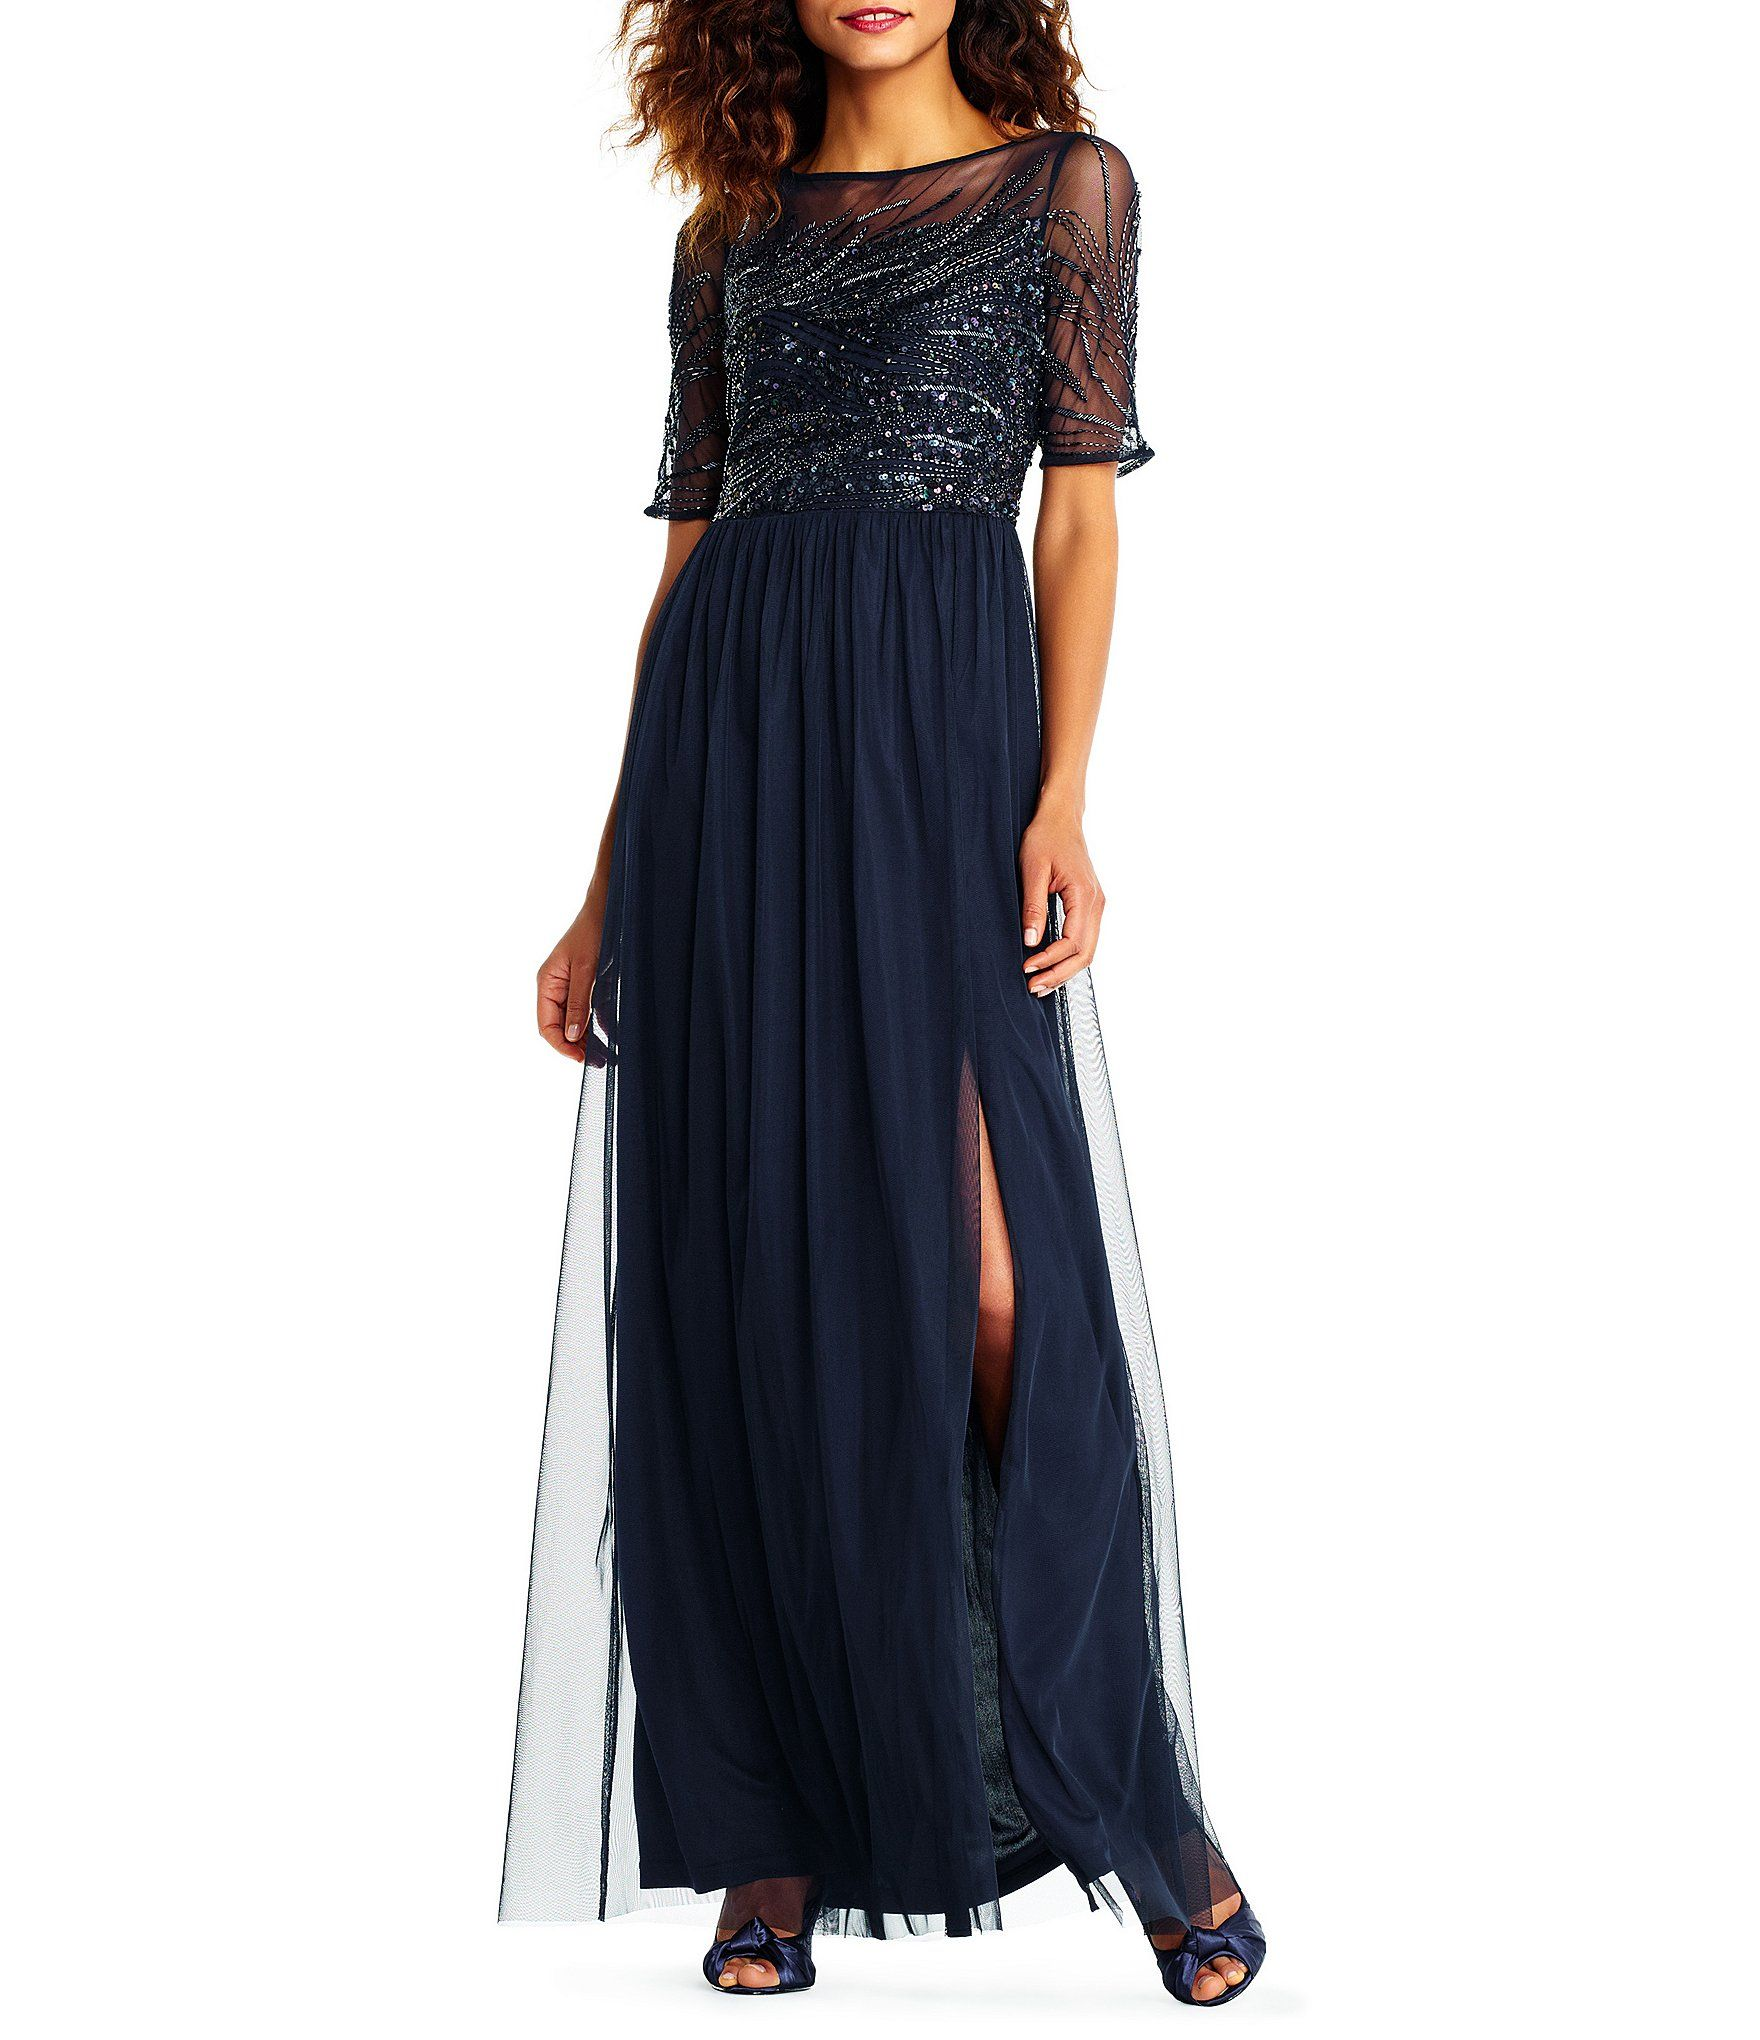 Adrianna Papell Beaded Bodice Gown | Adrianna papell, Dillards and ...